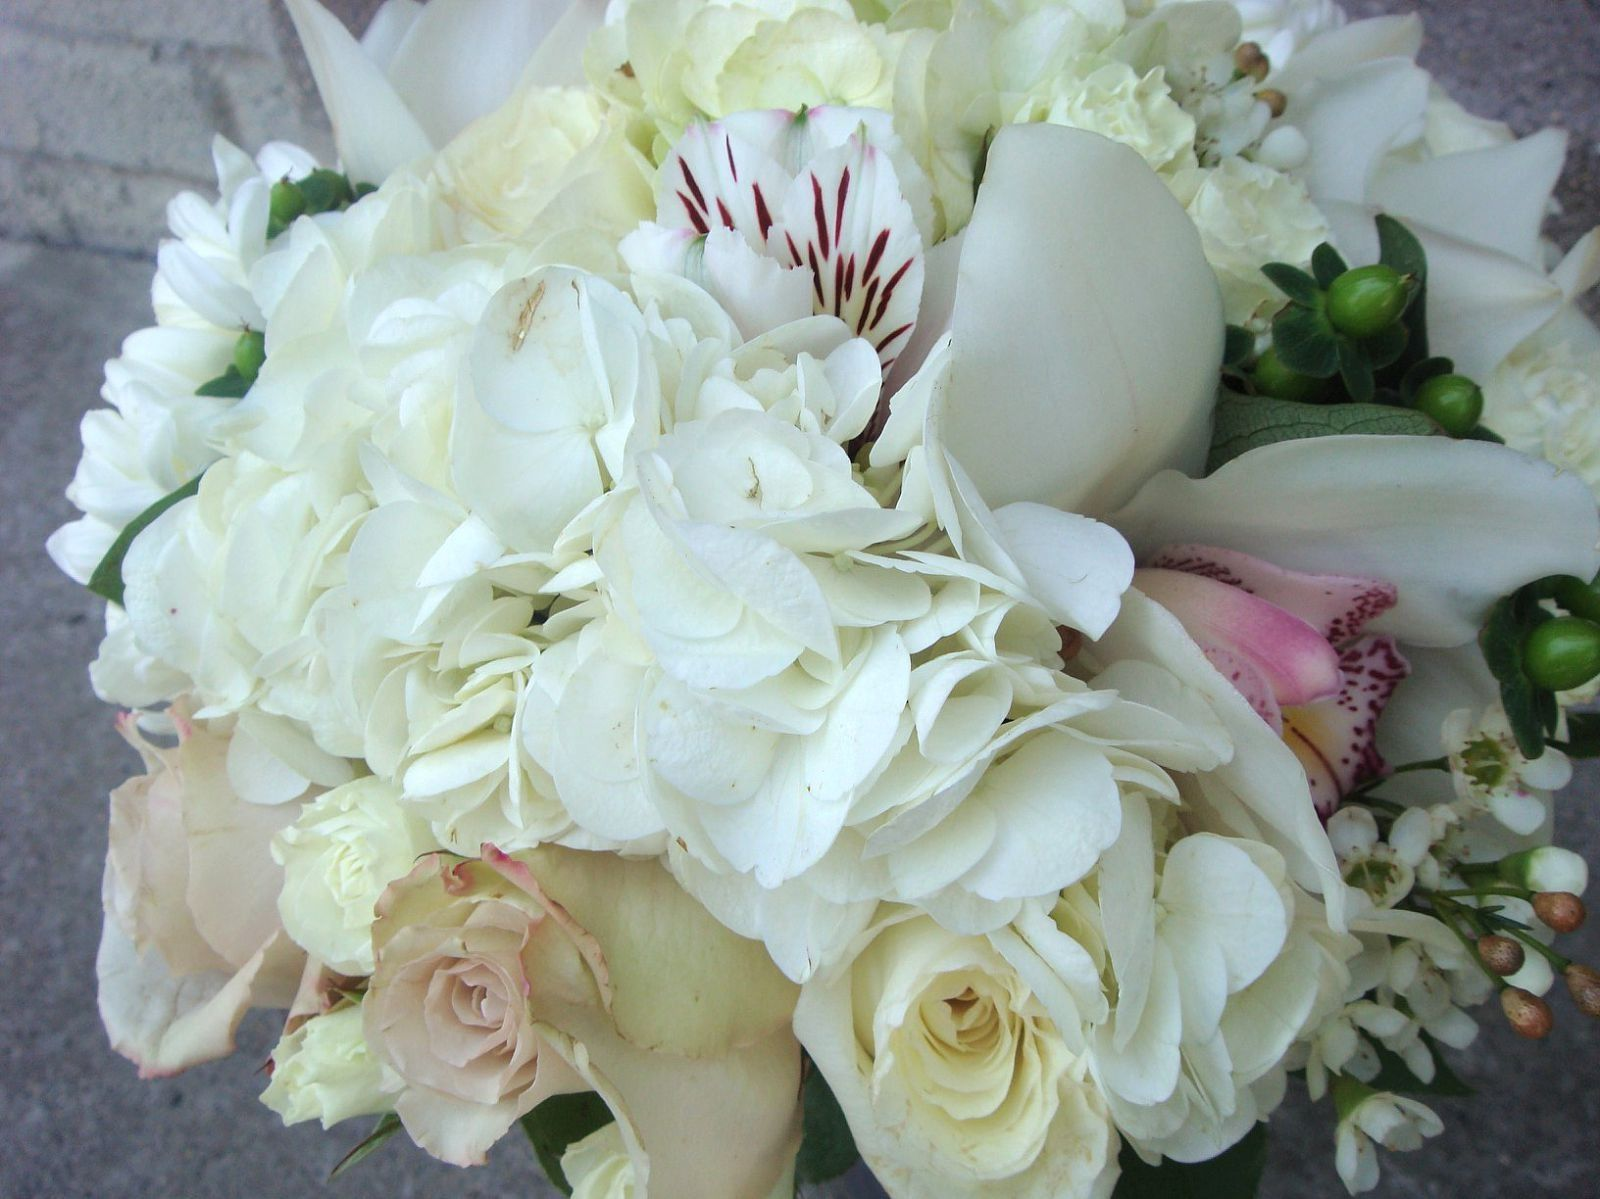 White hydrangea, orchids and roses